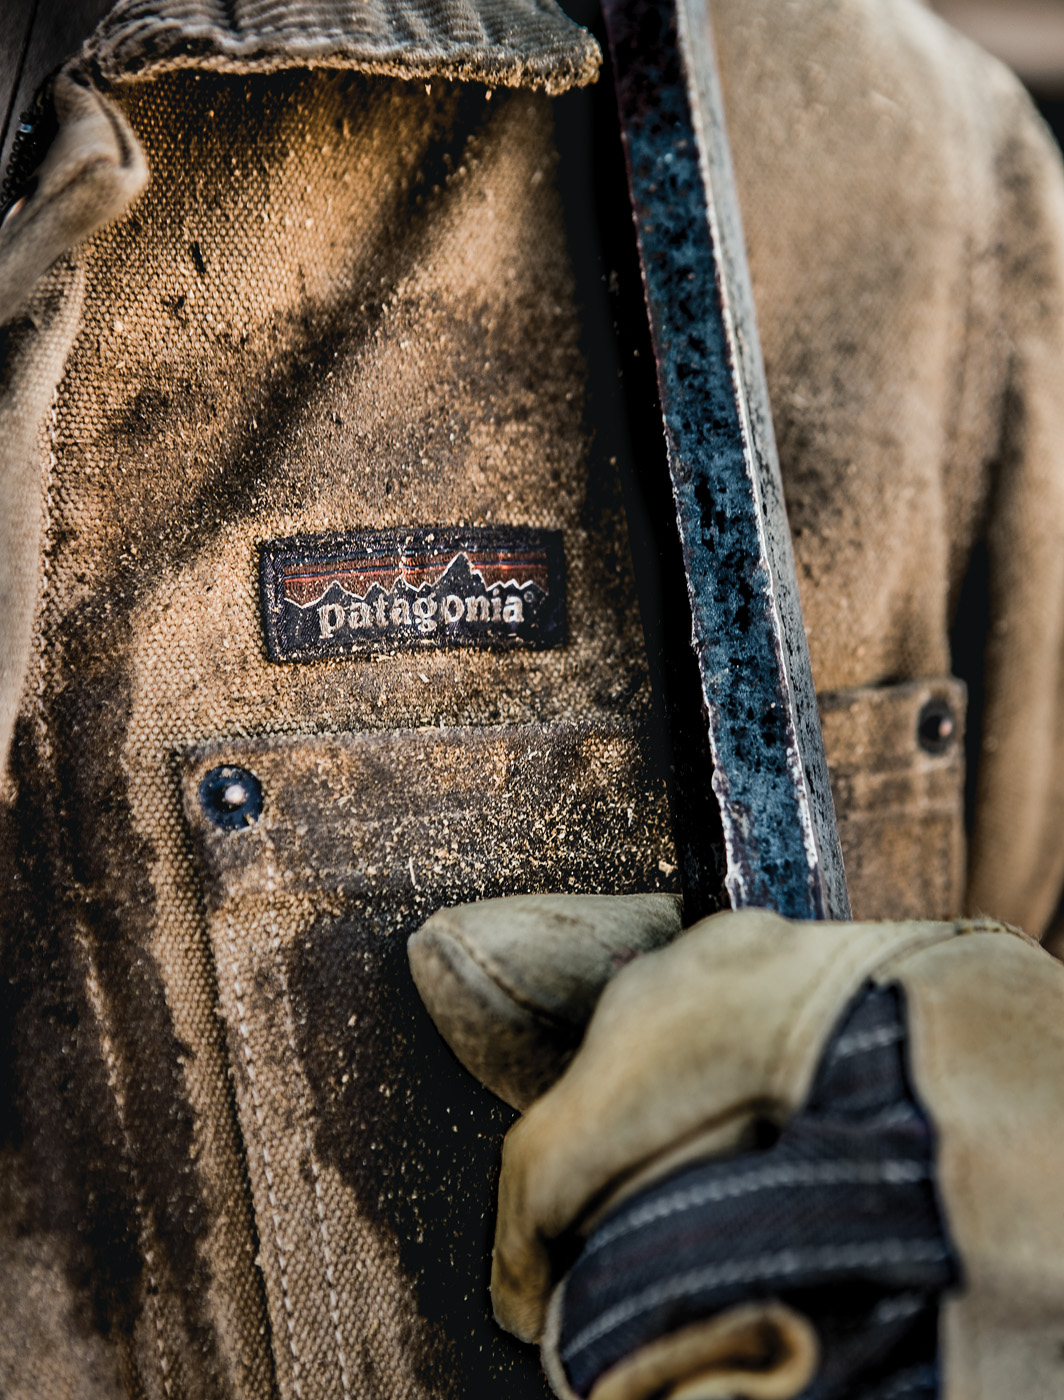 A gloved hand holds a metal bar up to the chest of a tan Patagonia workwear jacket.